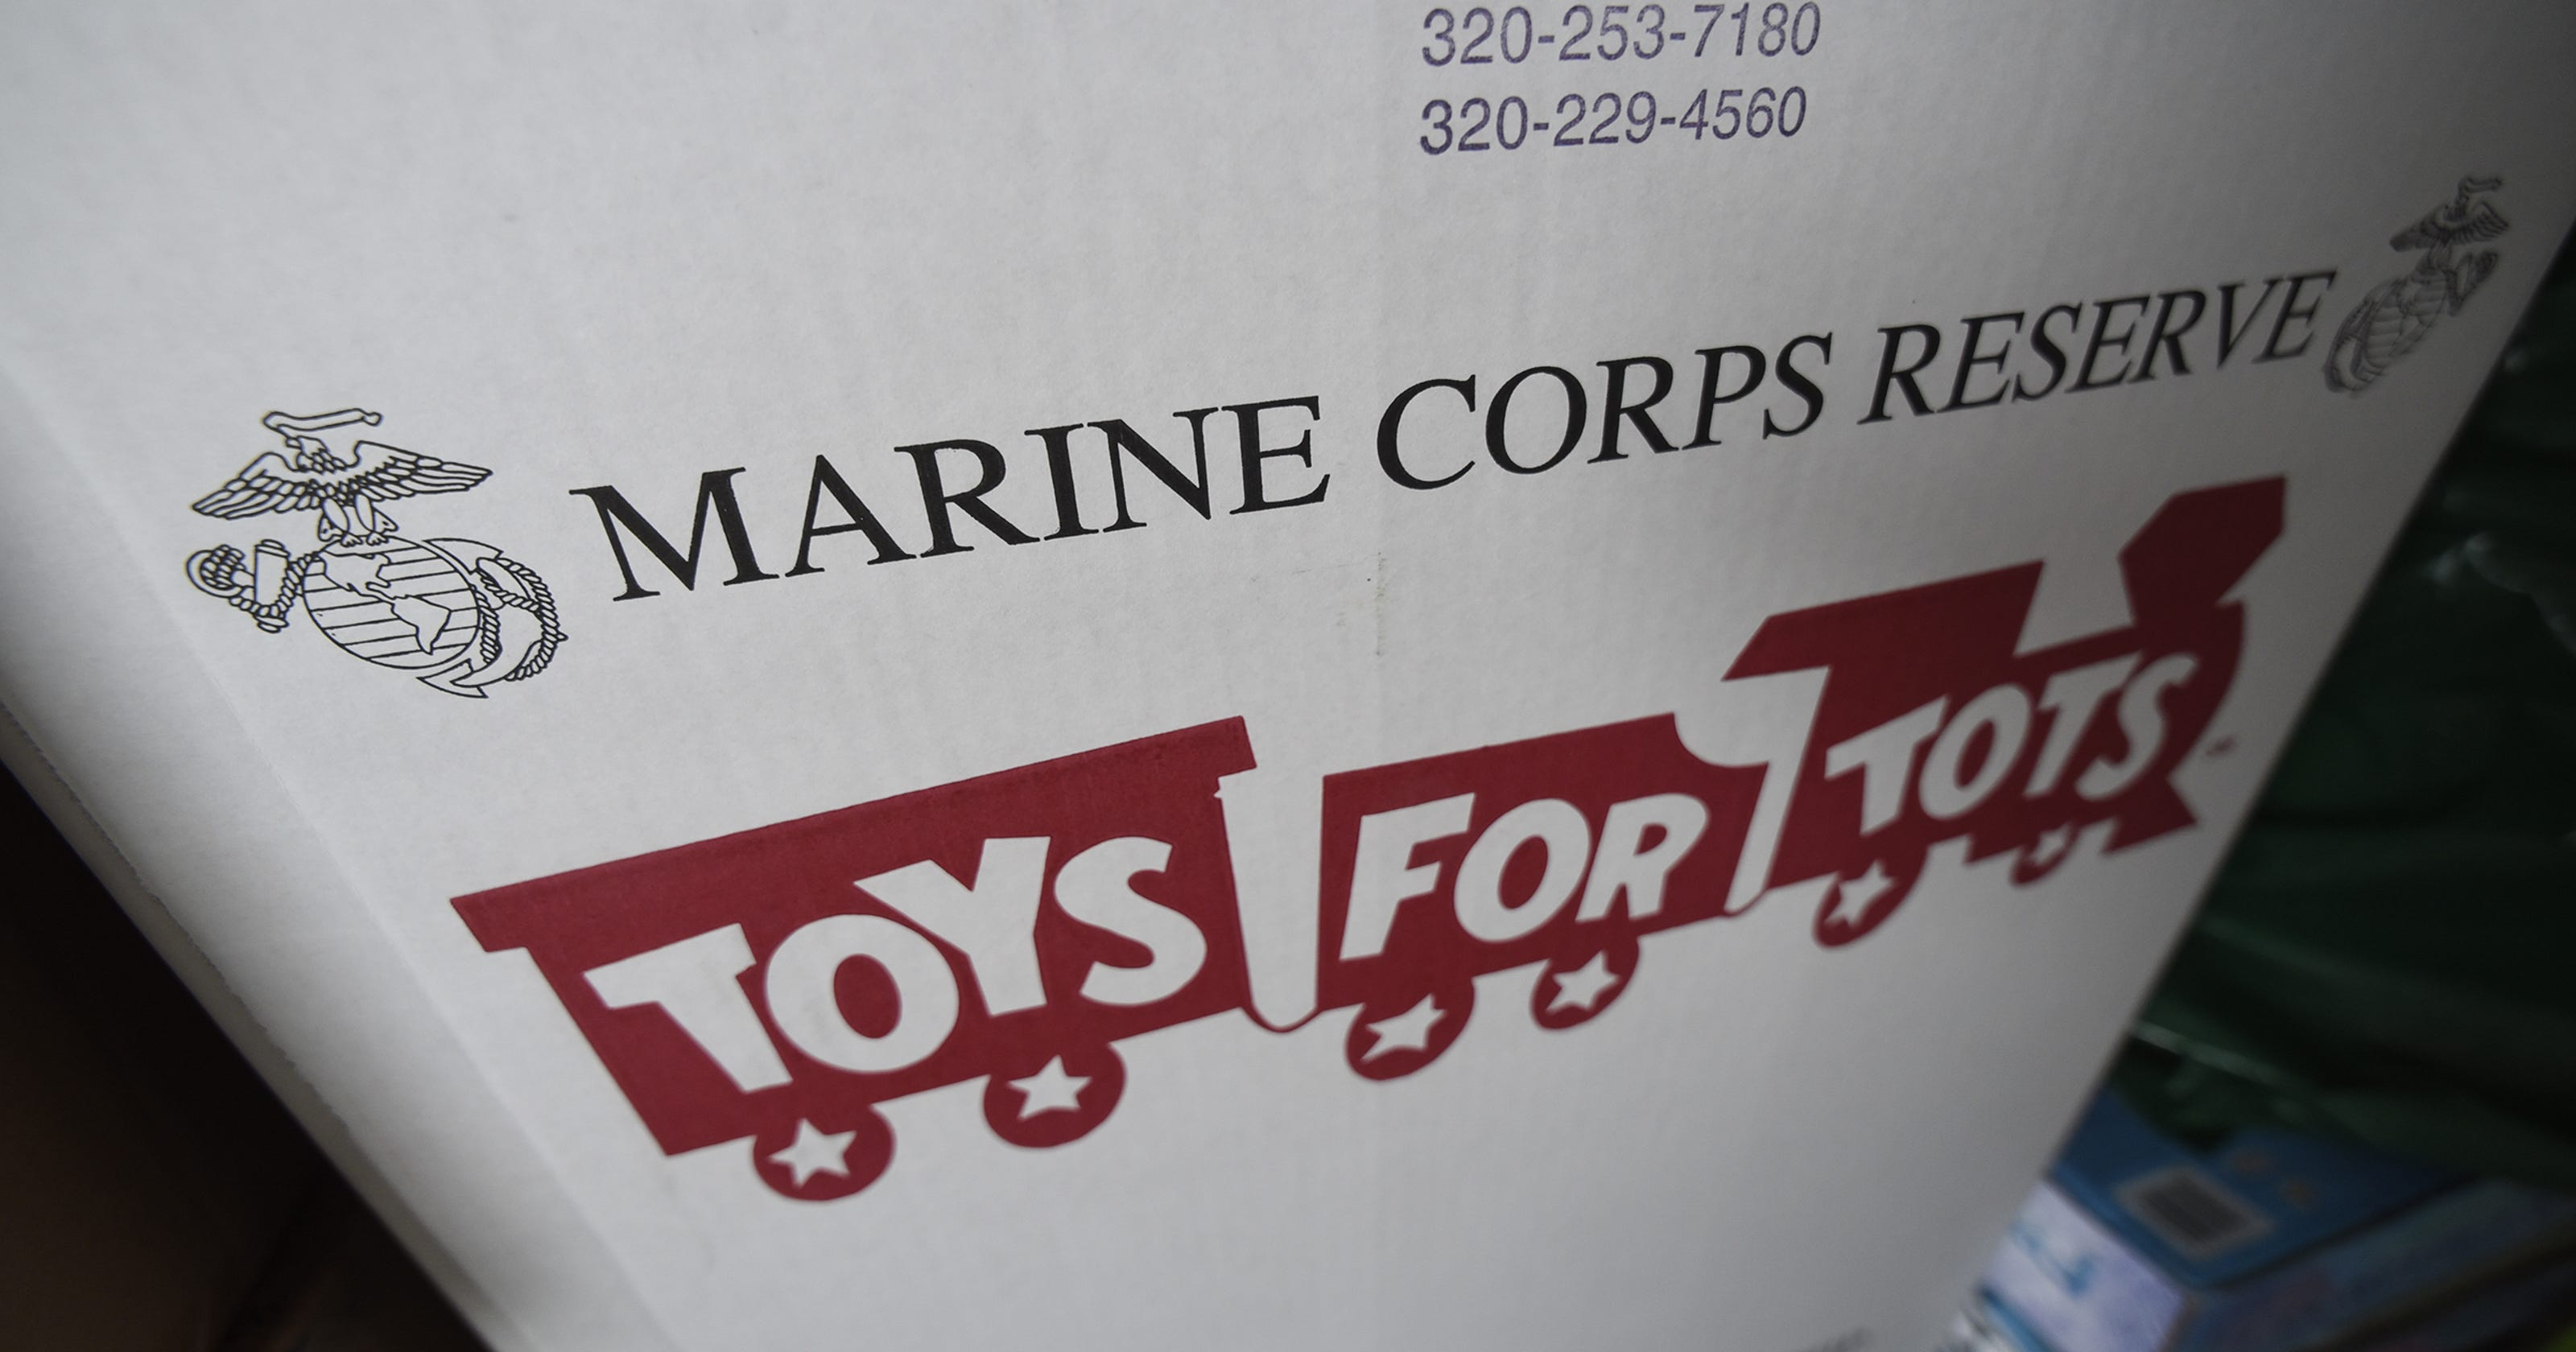 Toys For Tots Graphics : Thief stole donated toys in yonkers: ap